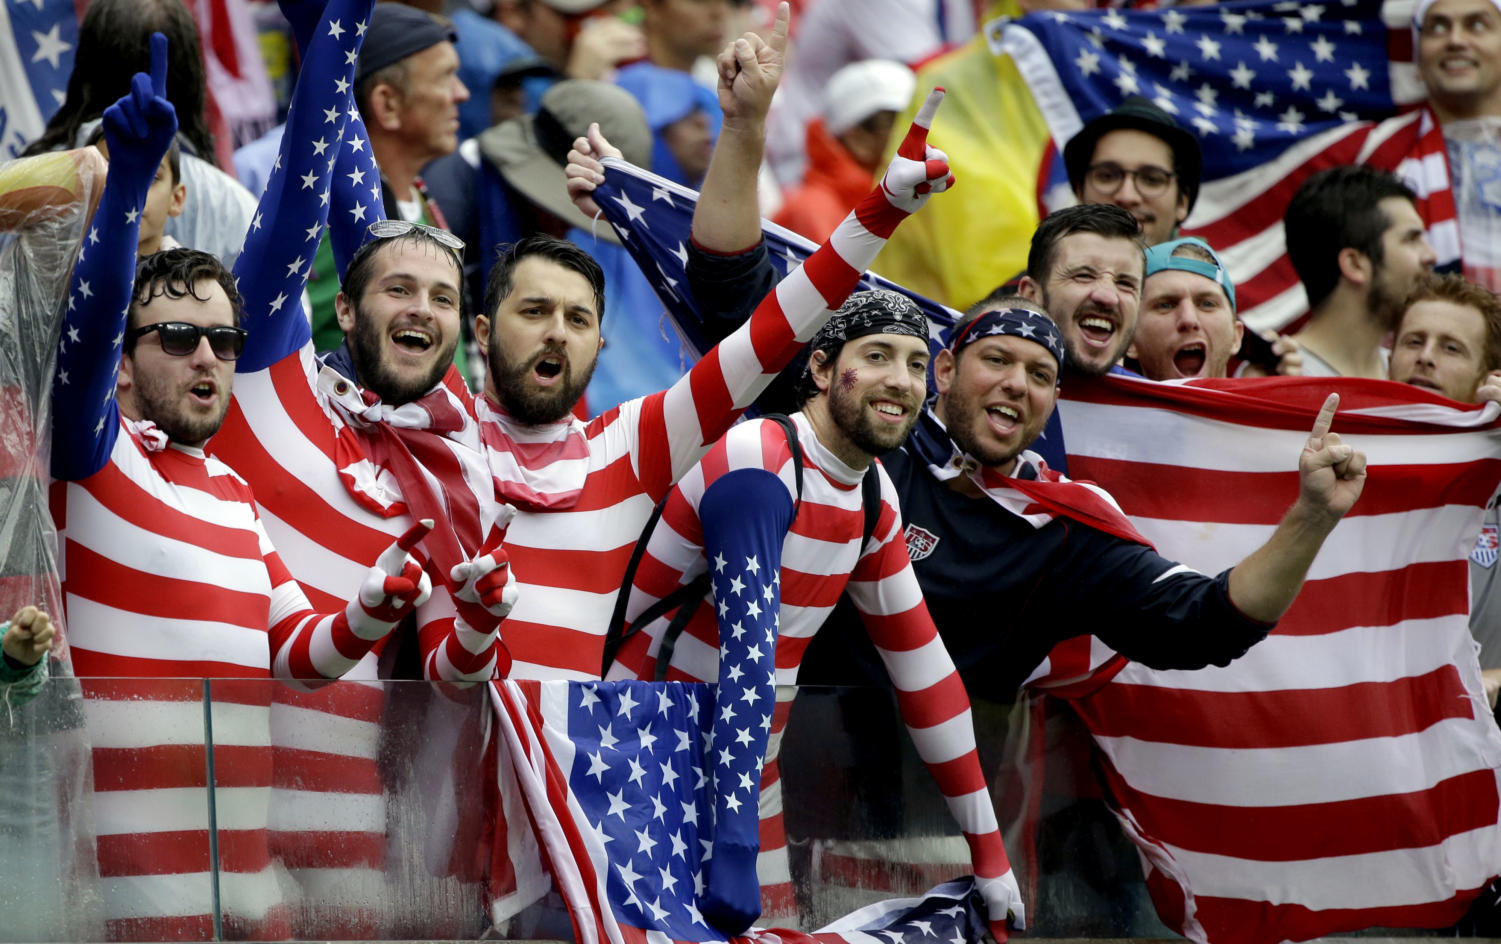 USA supporters cheer for their national team during the group G World Cup soccer match between the USA and Germany at the Arena Pernambuco in Recife, Brazil, Thursday, June 26, 2014. (AP Photo/Ricardo Mazalan) ORG XMIT: WCDP144